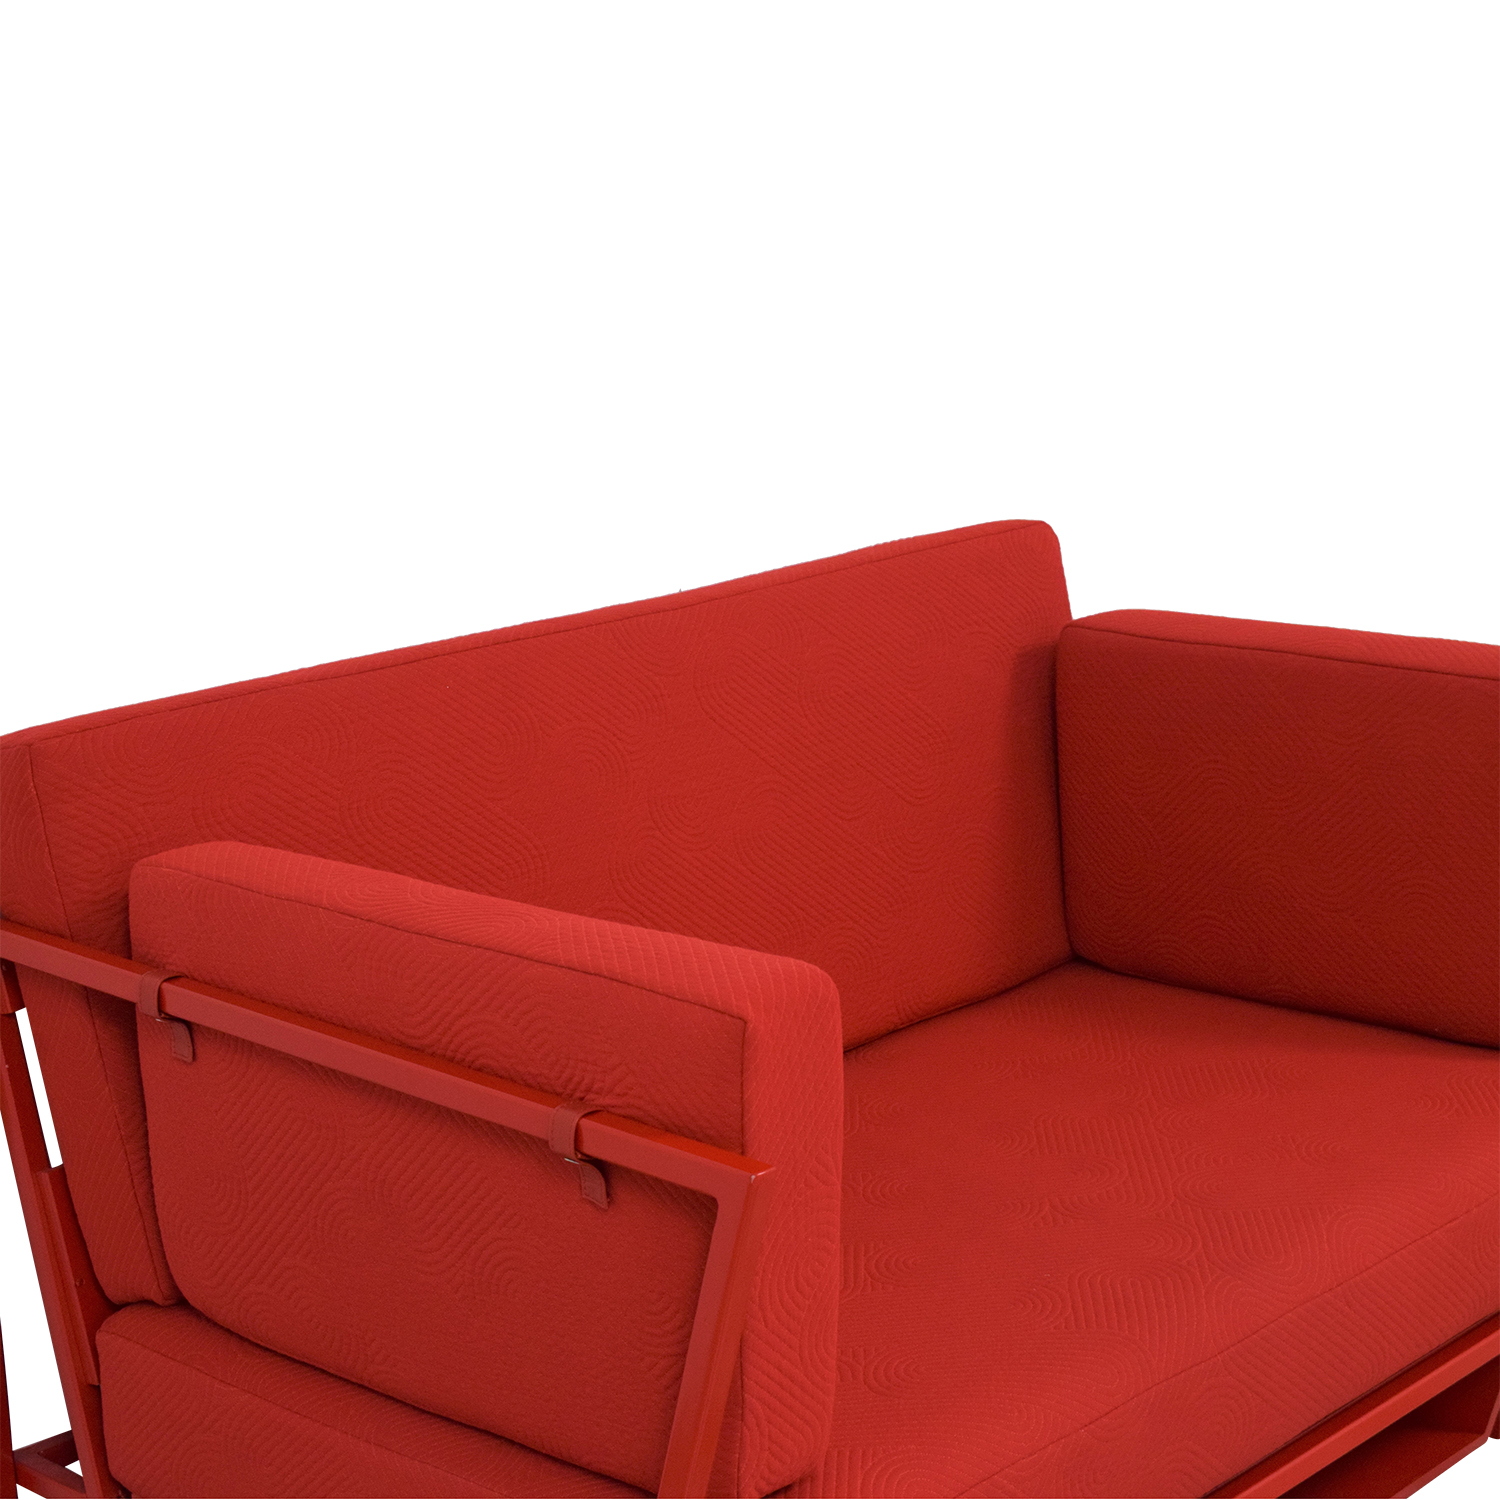 shop Collector NYC Custom Red Sofa Collector NYC Loveseats